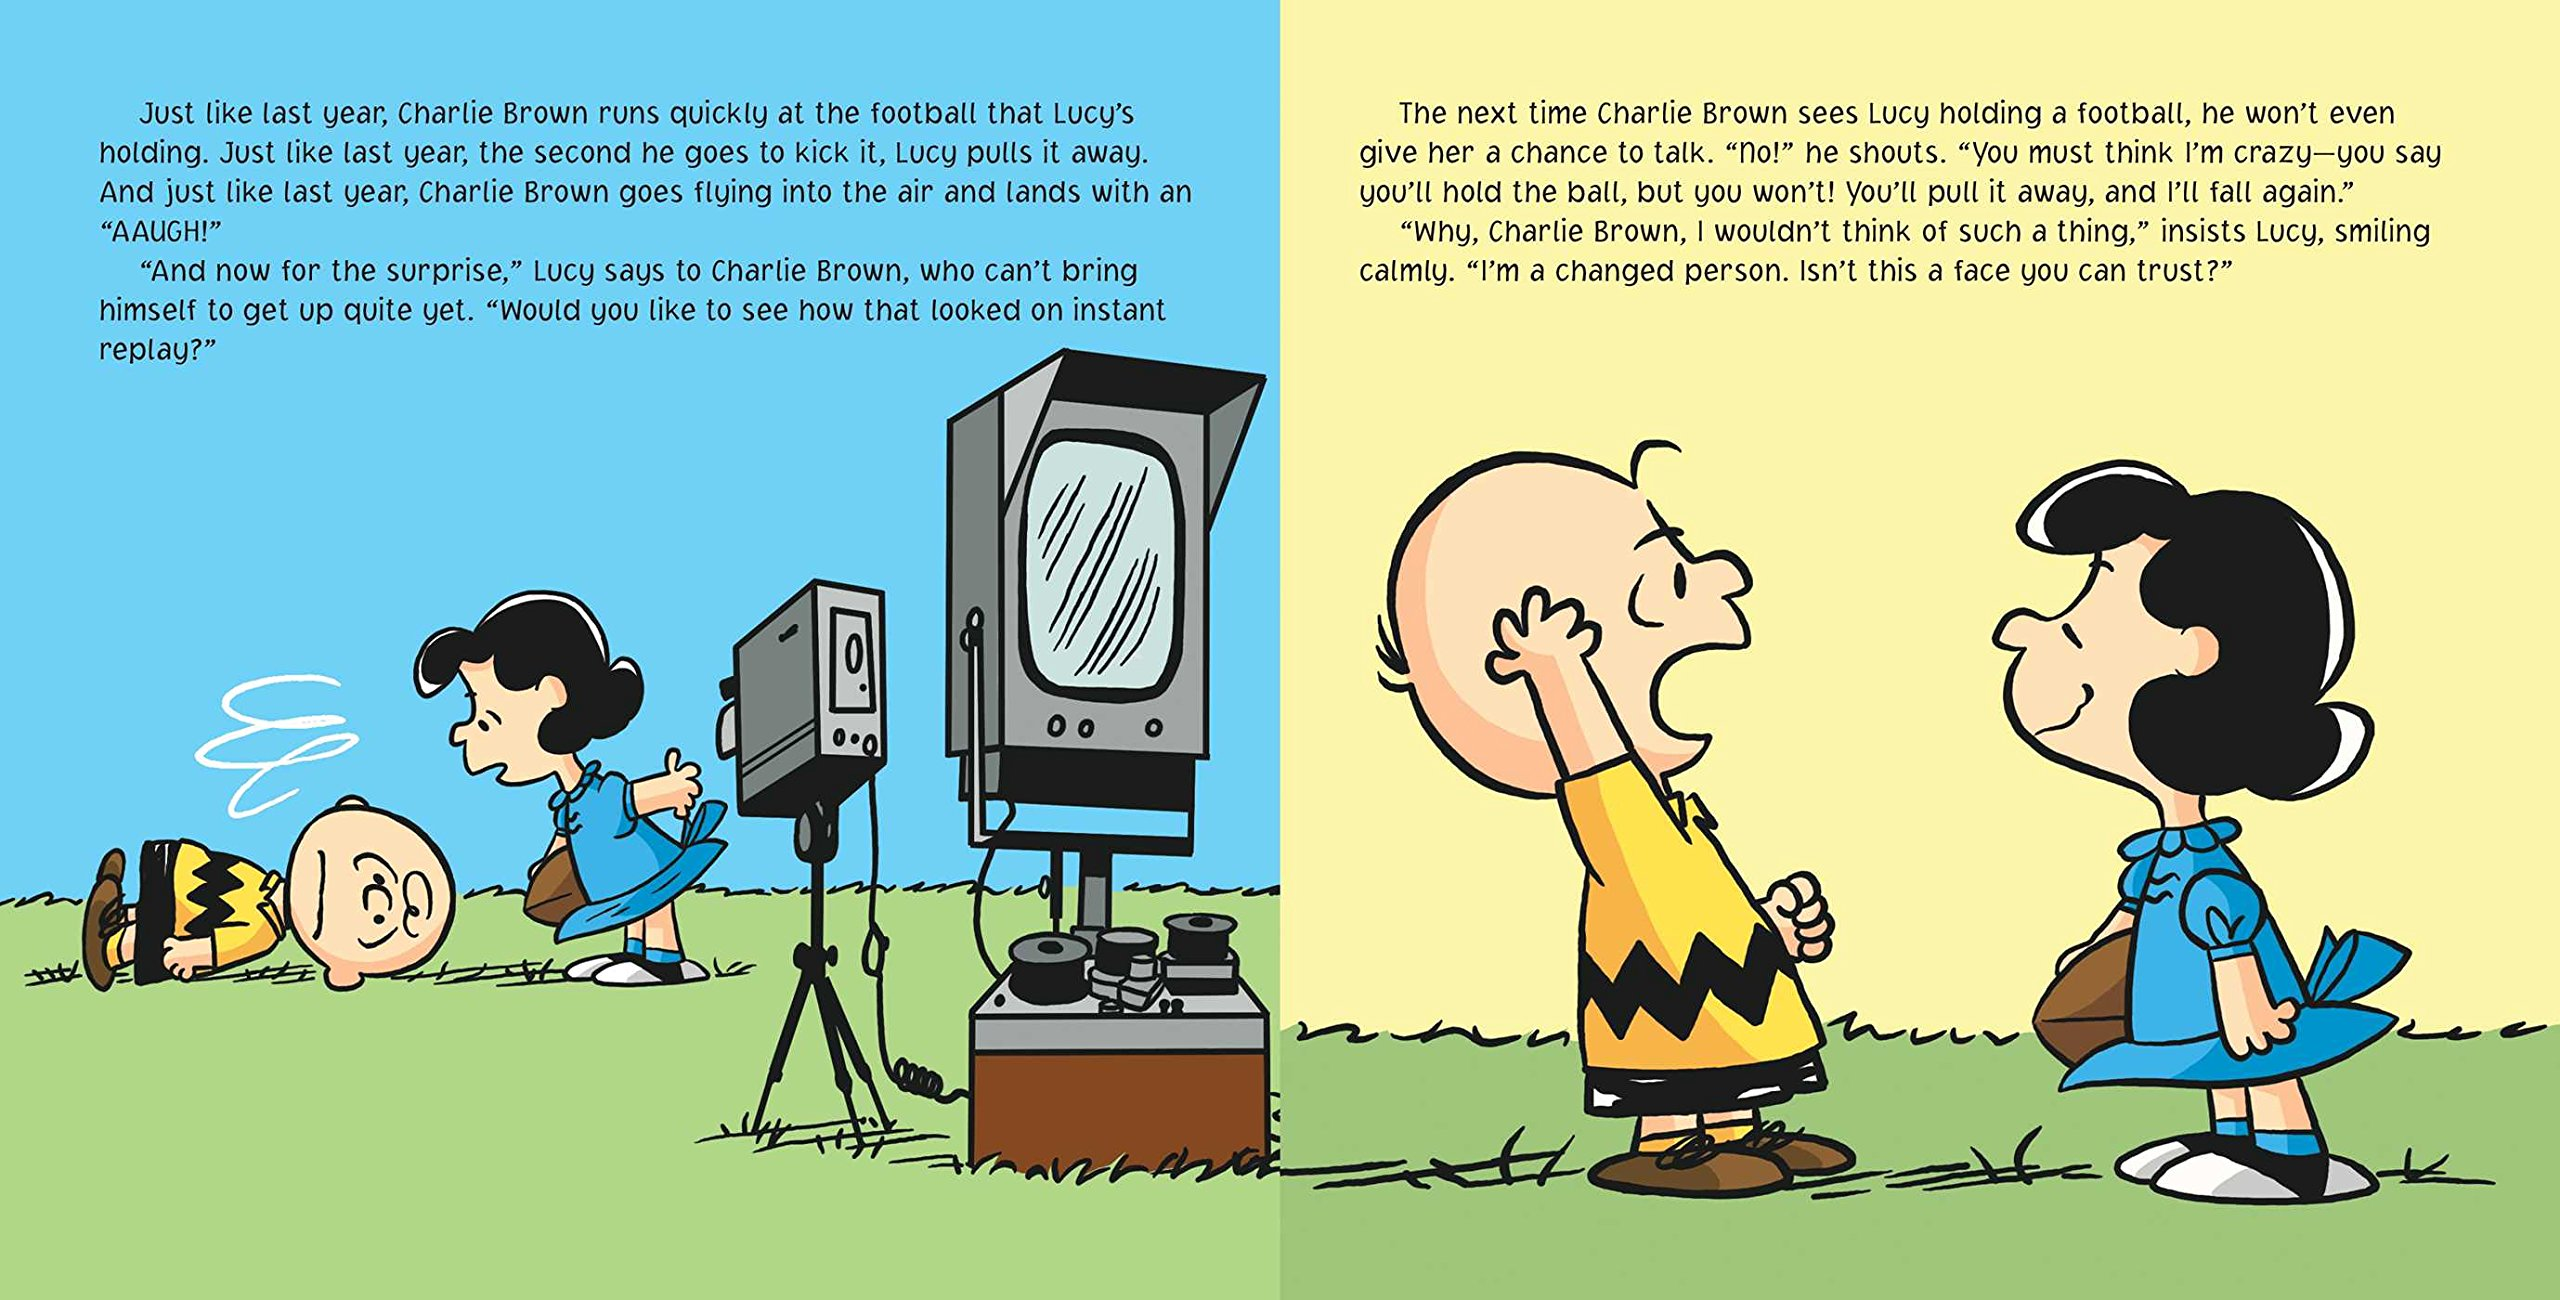 Amazon kick the football charlie brown peanuts charles m amazon kick the football charlie brown peanuts charles m schulz scott jeralds football voltagebd Image collections